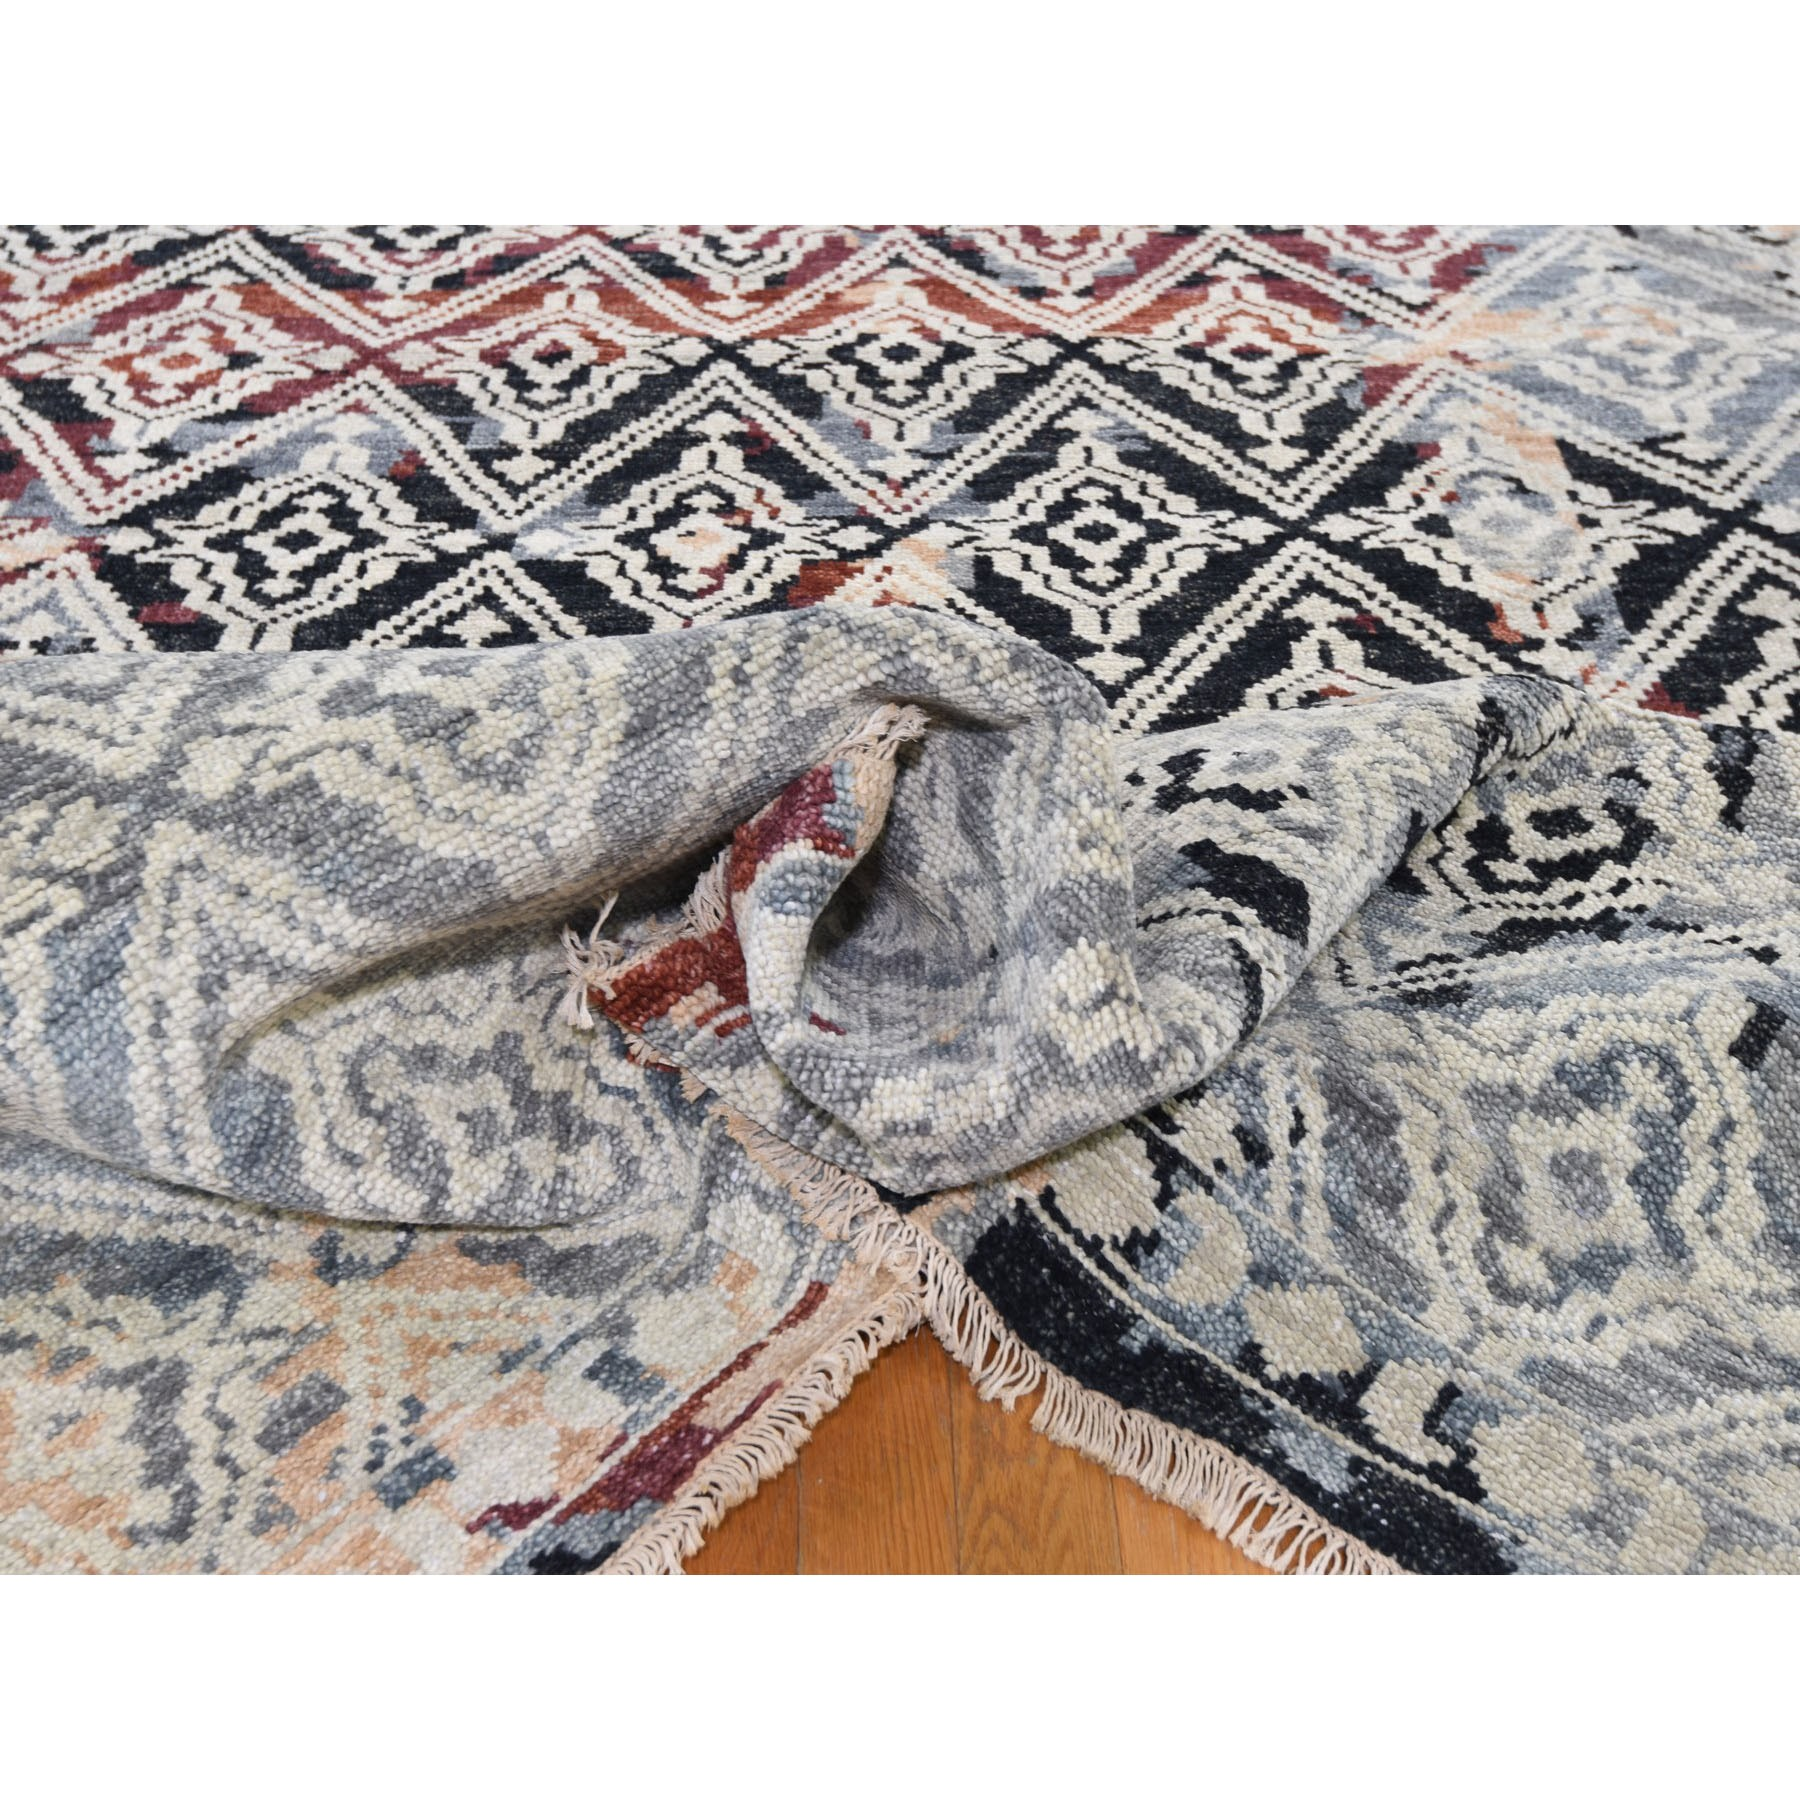 """9'10""""x14' Supple Collection Erased Repetitive Mughal Design Hand Knotted Oriental Rug"""